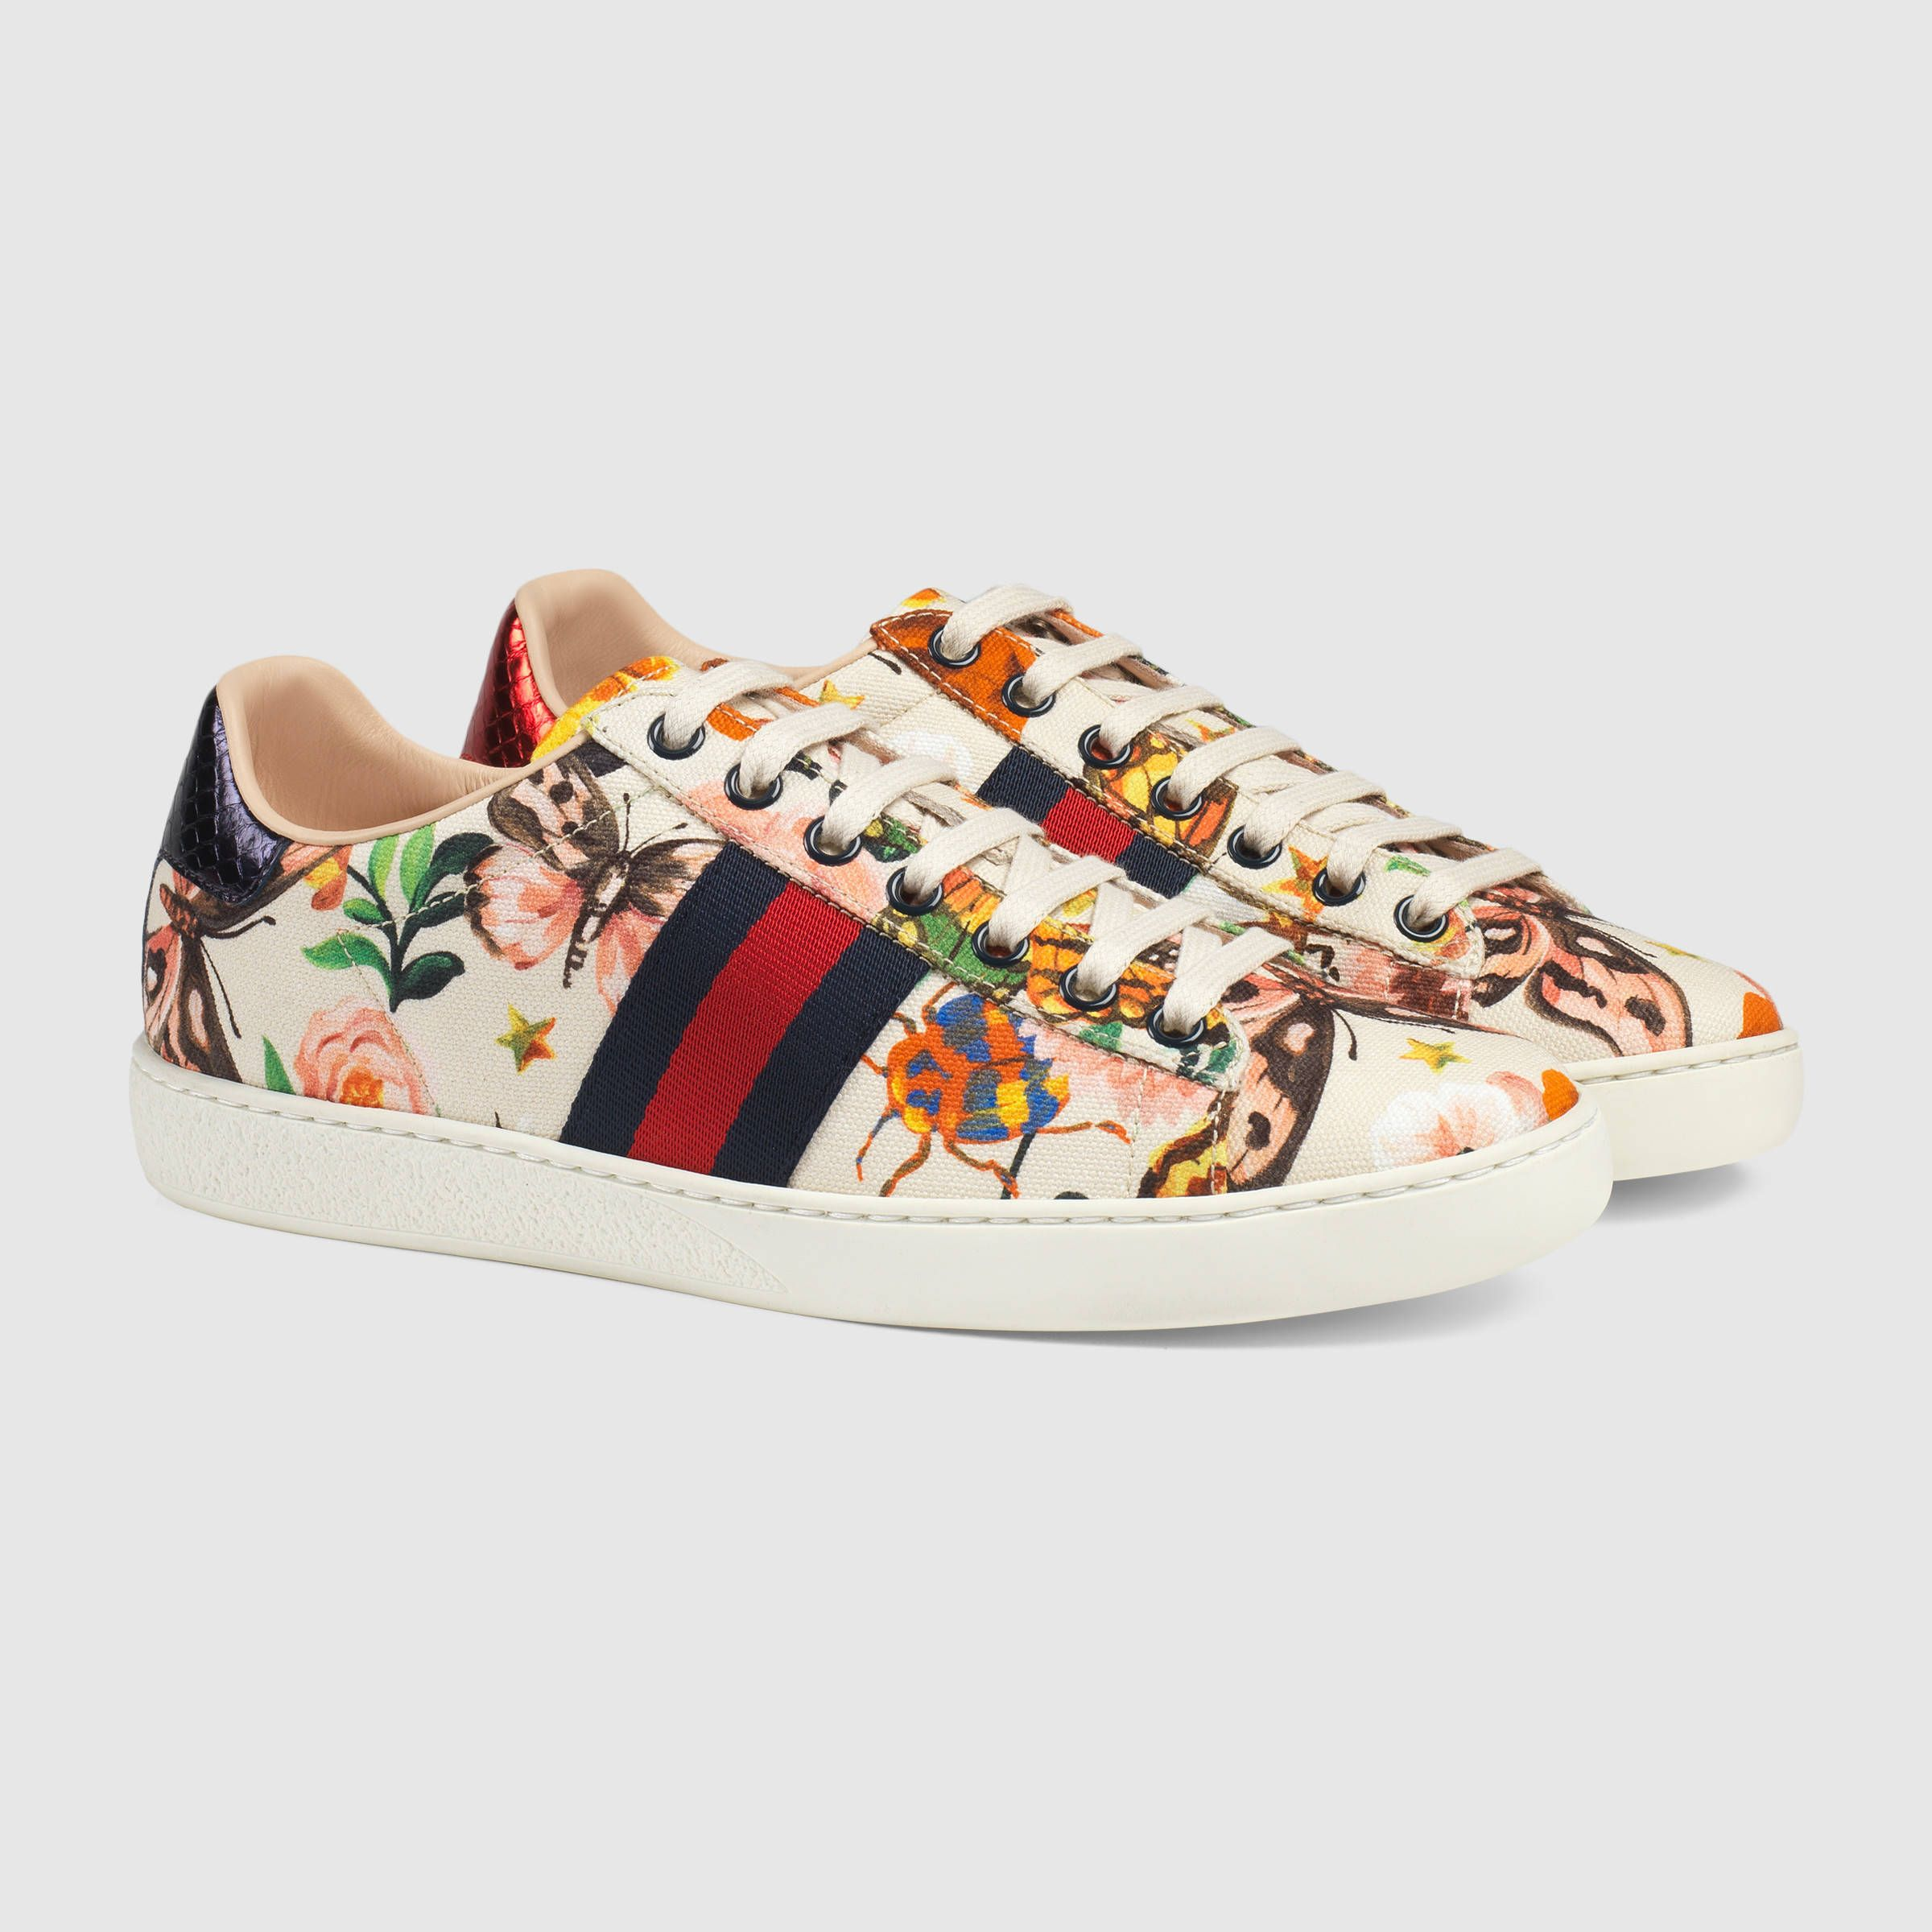 womens Skateboarding Shoes Canvas Tropical Gardern Patterns Sport Sneaker